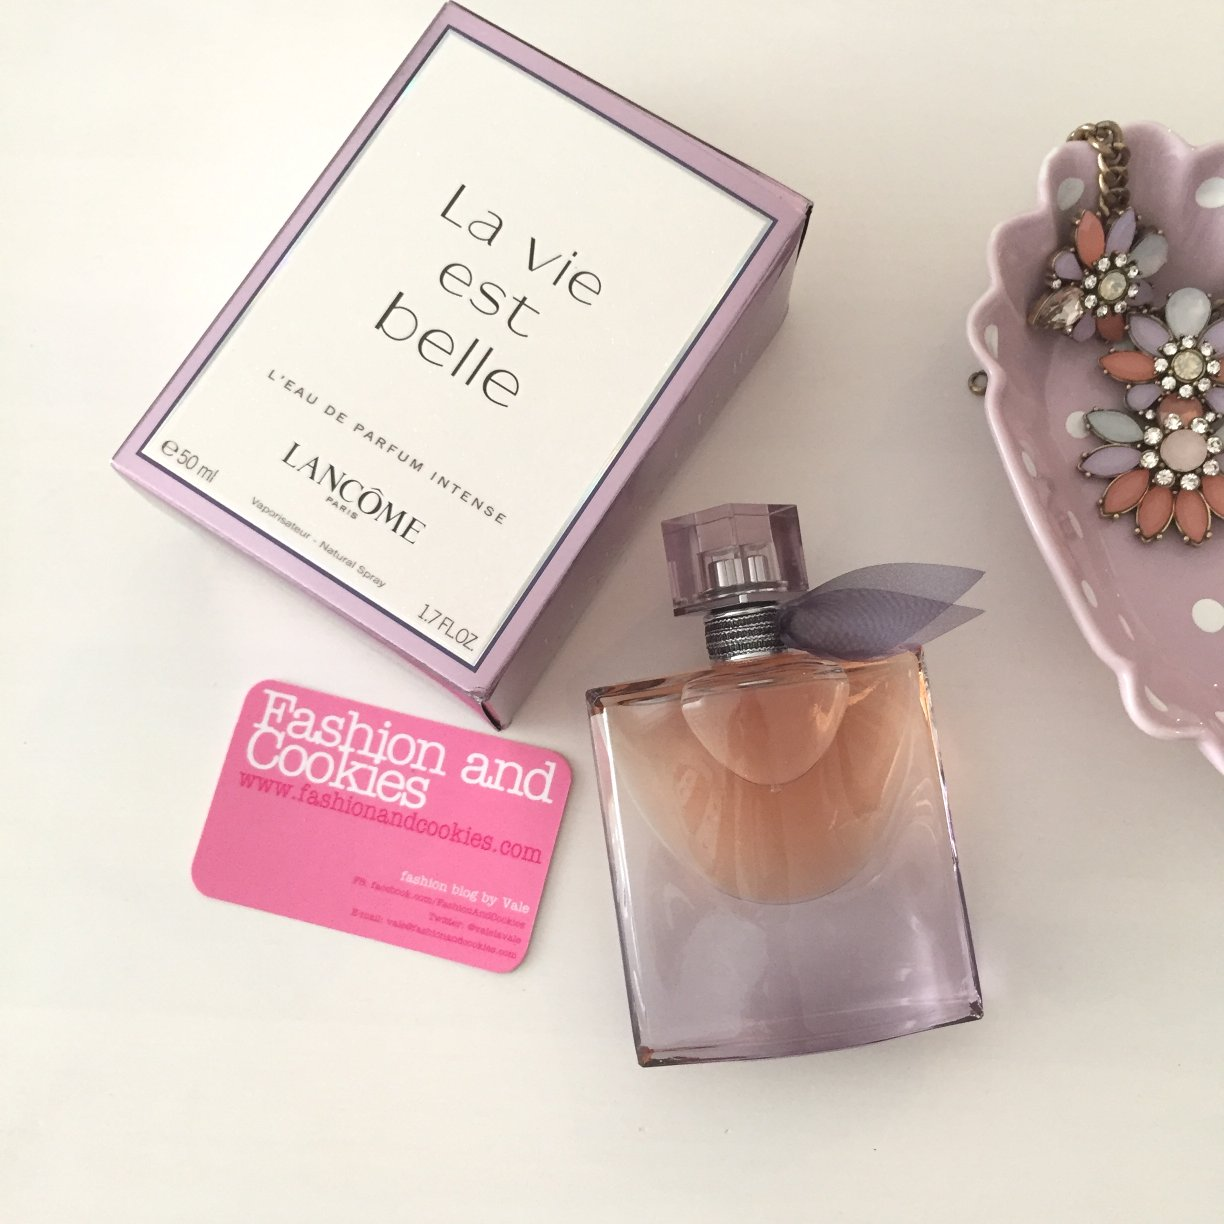 Lancôme La Vie Est Belle, Eau de Parfum Intense on Fashion and Cookies fashion and beauty blog